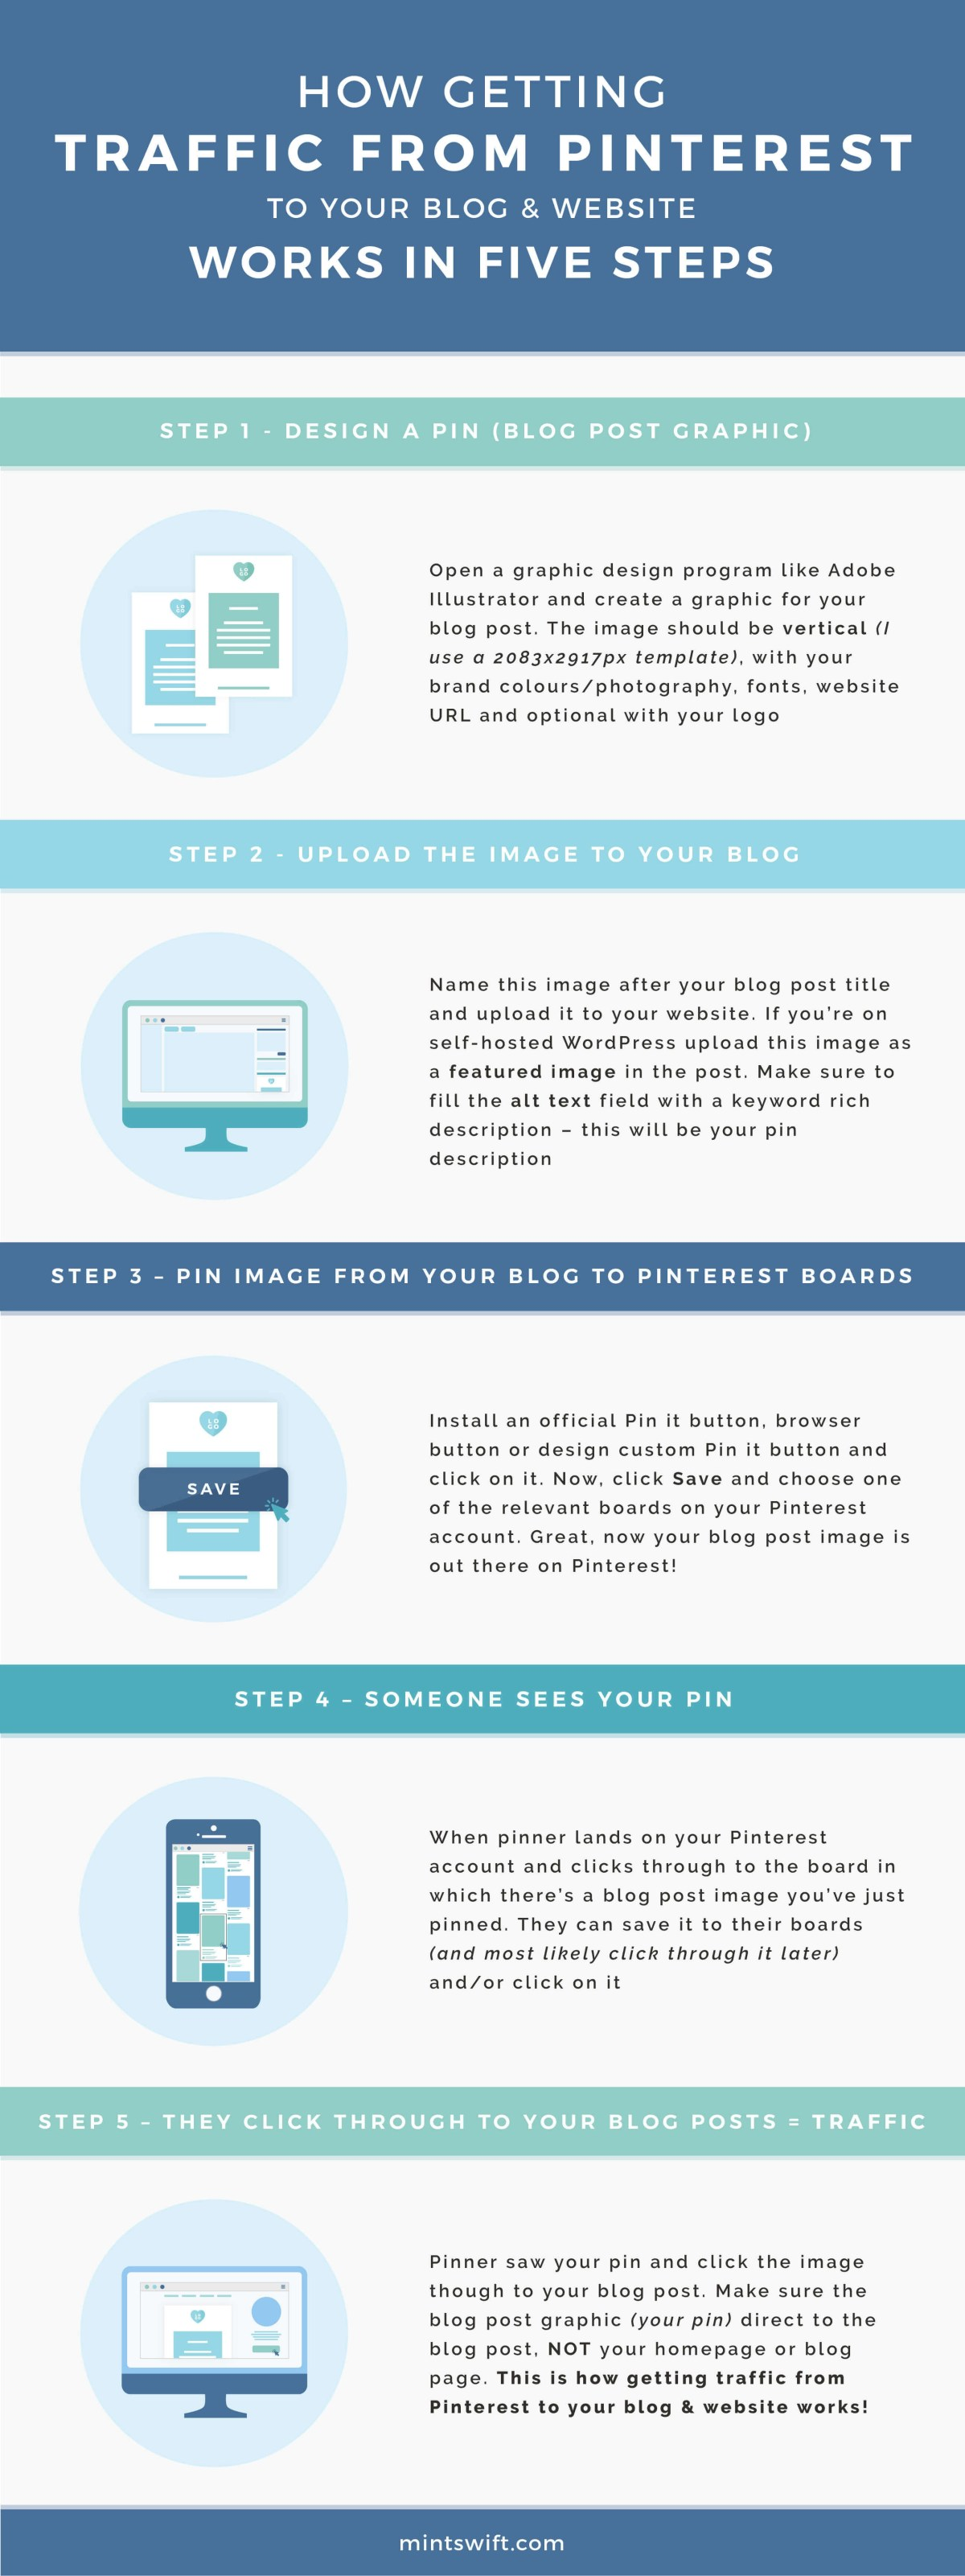 How getting traffic from Pinterest to your blog and website works in five steps - infographic by MintSwift